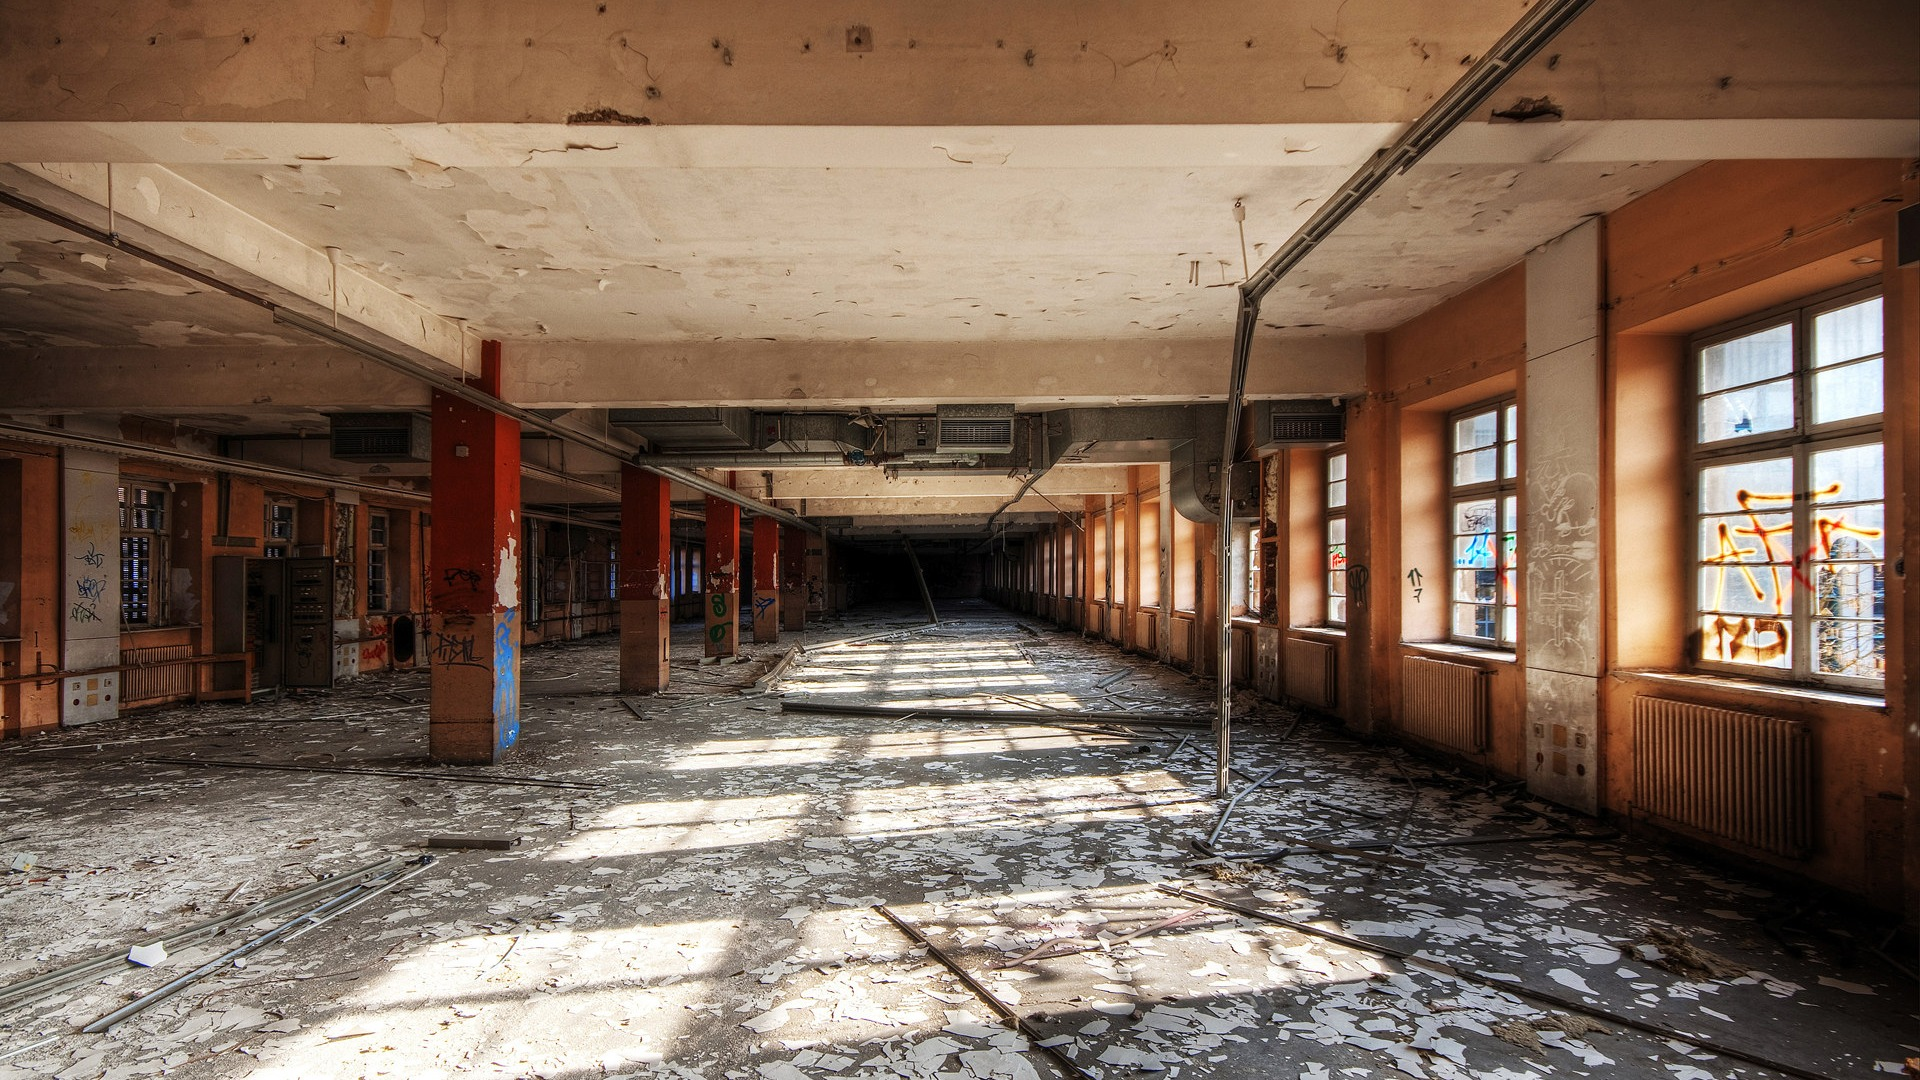 ... Post Office - Urban Decay Photography - 1920x1080 wallpaper download